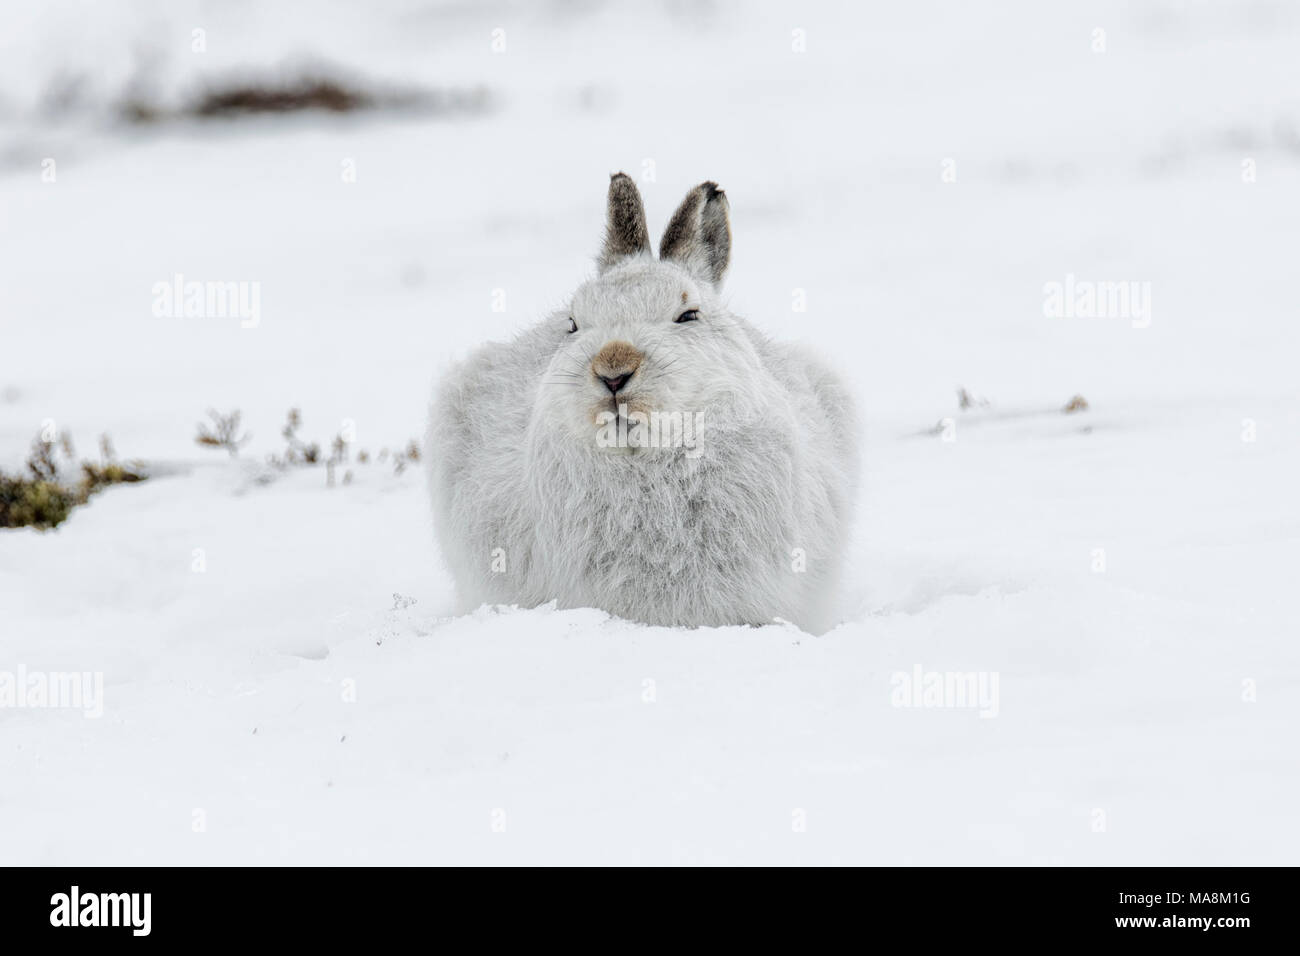 Mountain hare (lepus timidus) hunkered down on snow covered hillside in the Scottish Highlands, March 2018 - Stock Image